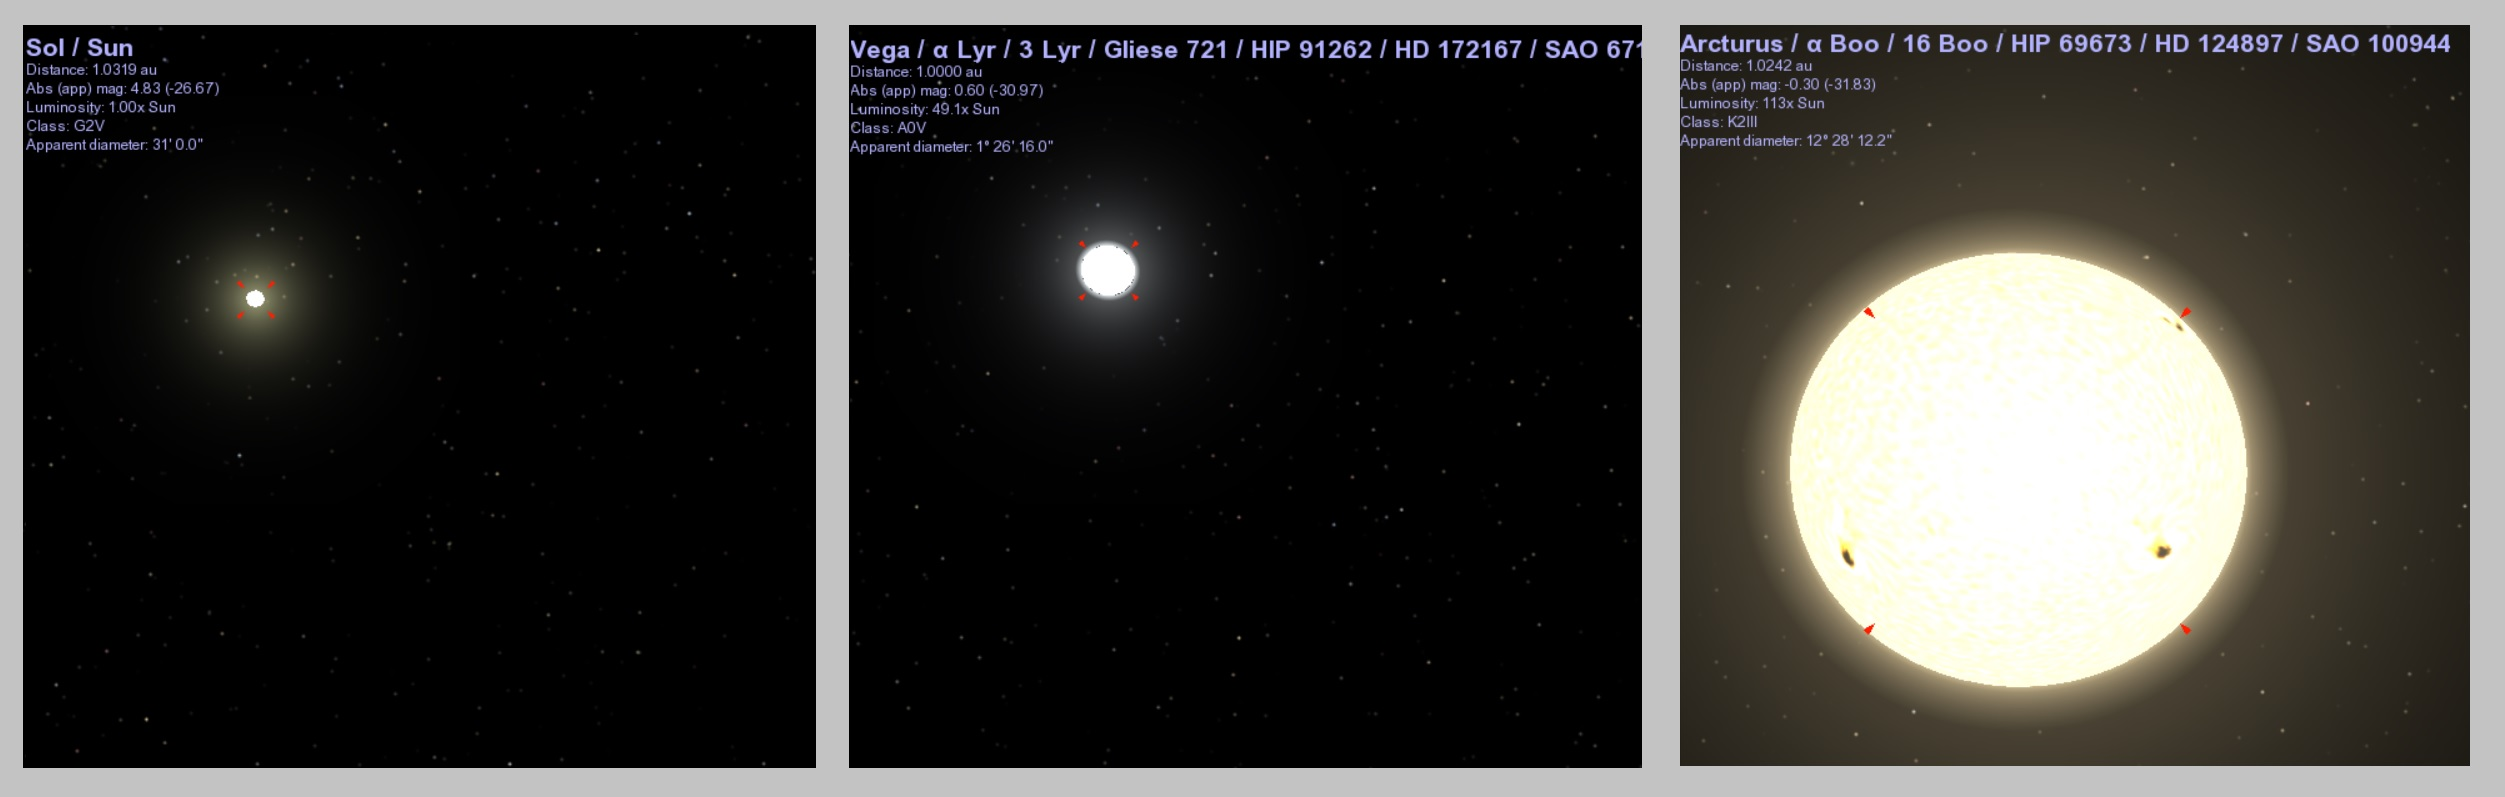 The sun, Vega, and Arcturus as they would appear from a distance of 1 AU, according to the Celestia app.